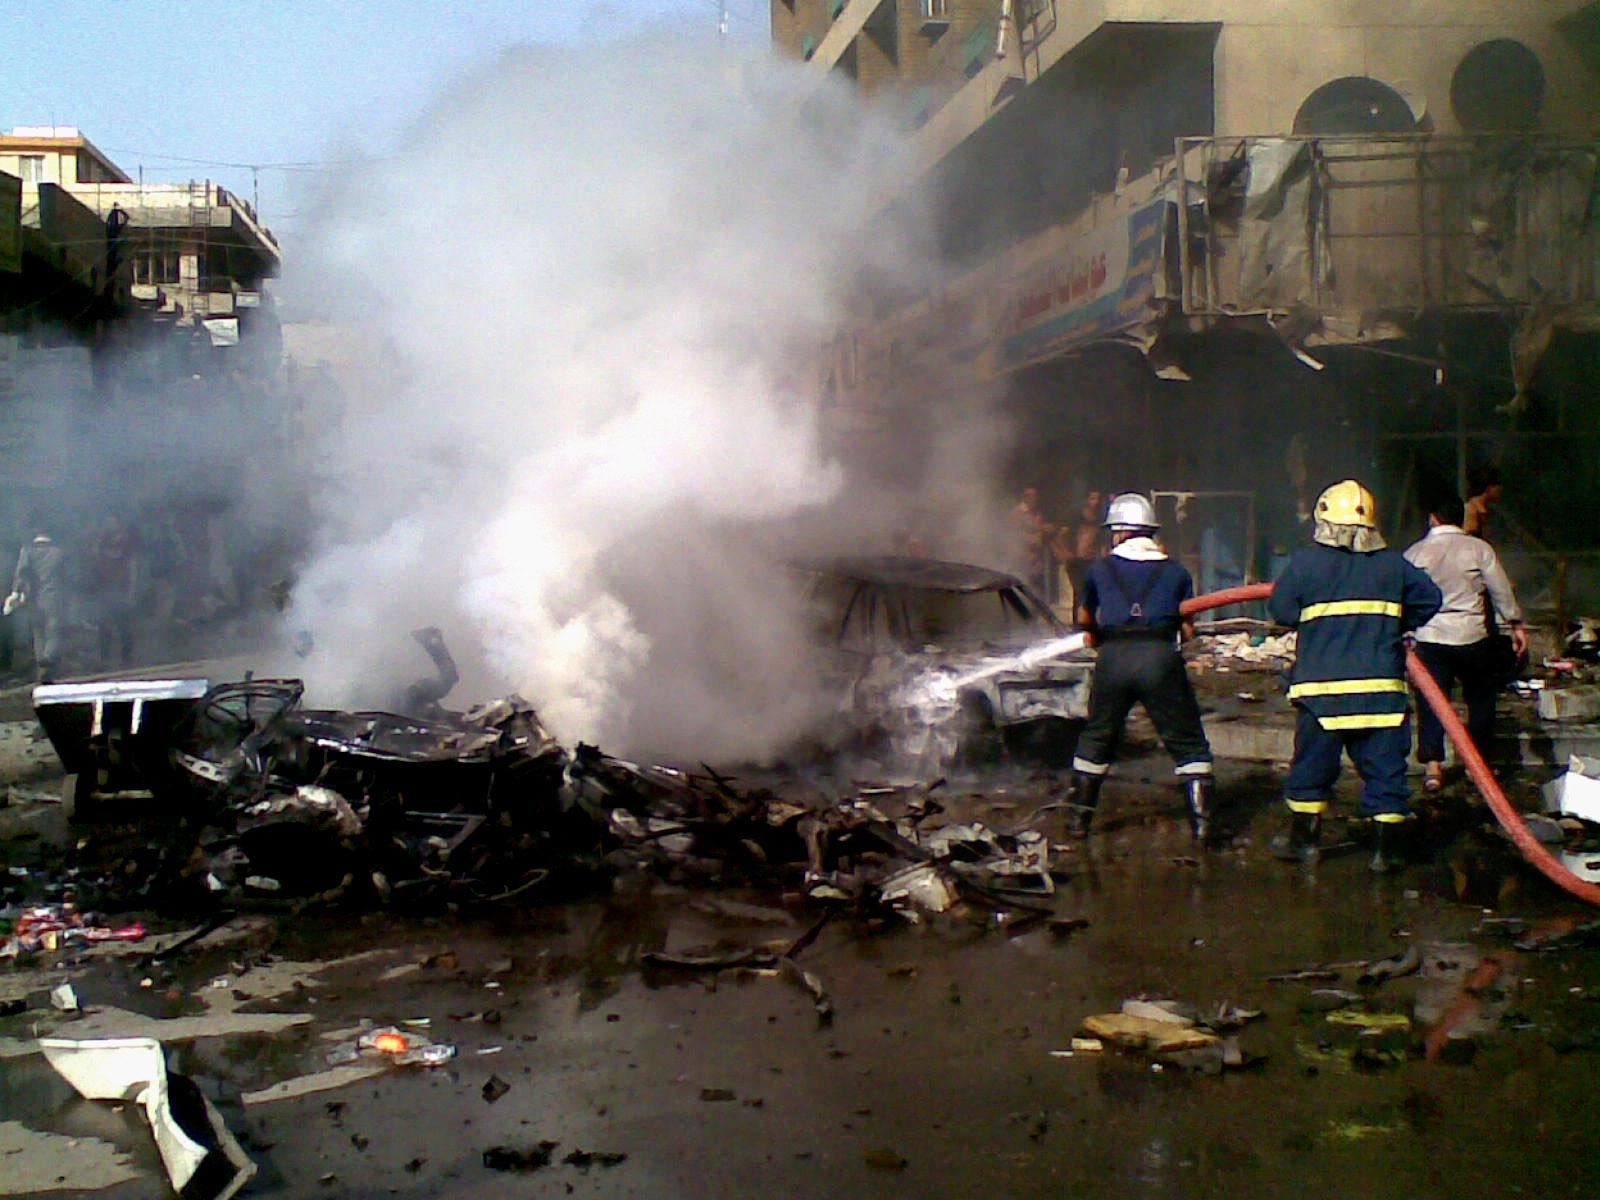 Iraqi firefighters distinguish a fire at the scene of a car bomb attack in Baghdad, Iraq, Monday, May 27, 2013. A parked car bomb explosion in the busy commercial Sadoun Street in central Baghdad, killed and wounded scores of people, police said. (AP Photo)